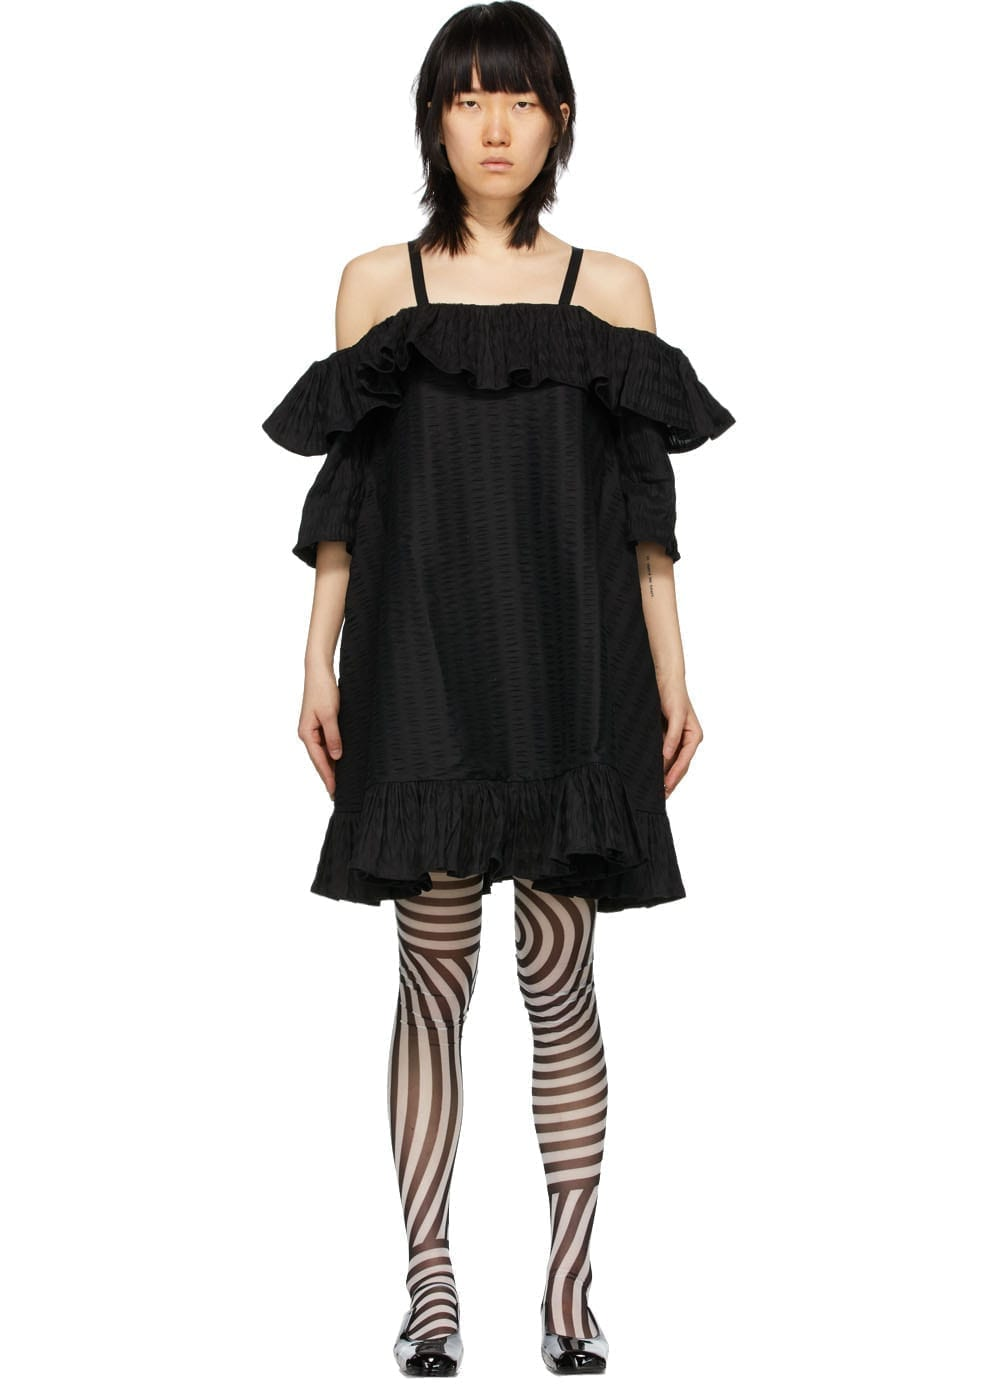 HENRIK VIBSKOV Black Seersucker Floss Dress